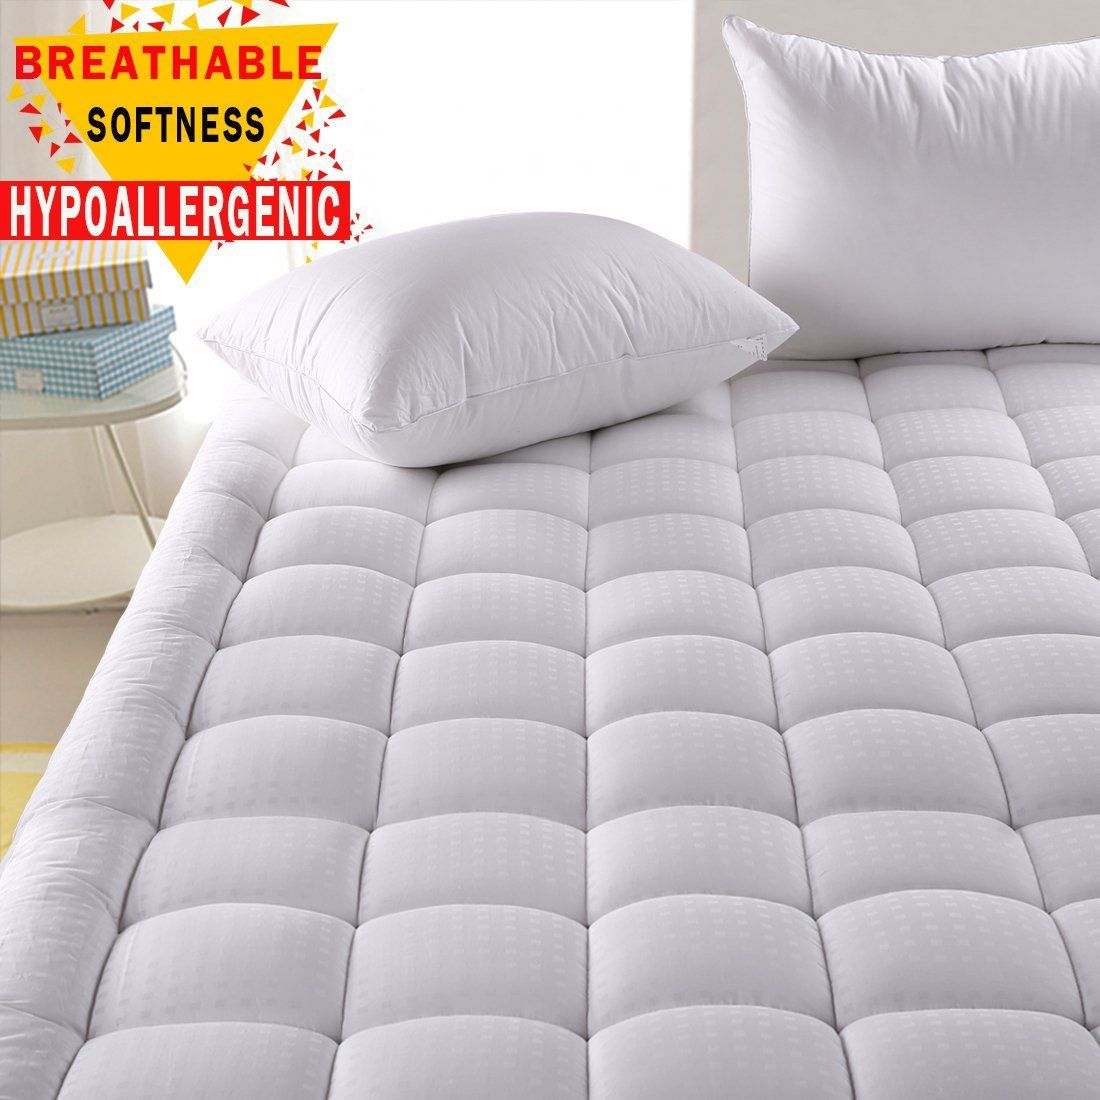 hypoallergenic quilted mattress pad cover with 300tc 100 cotton